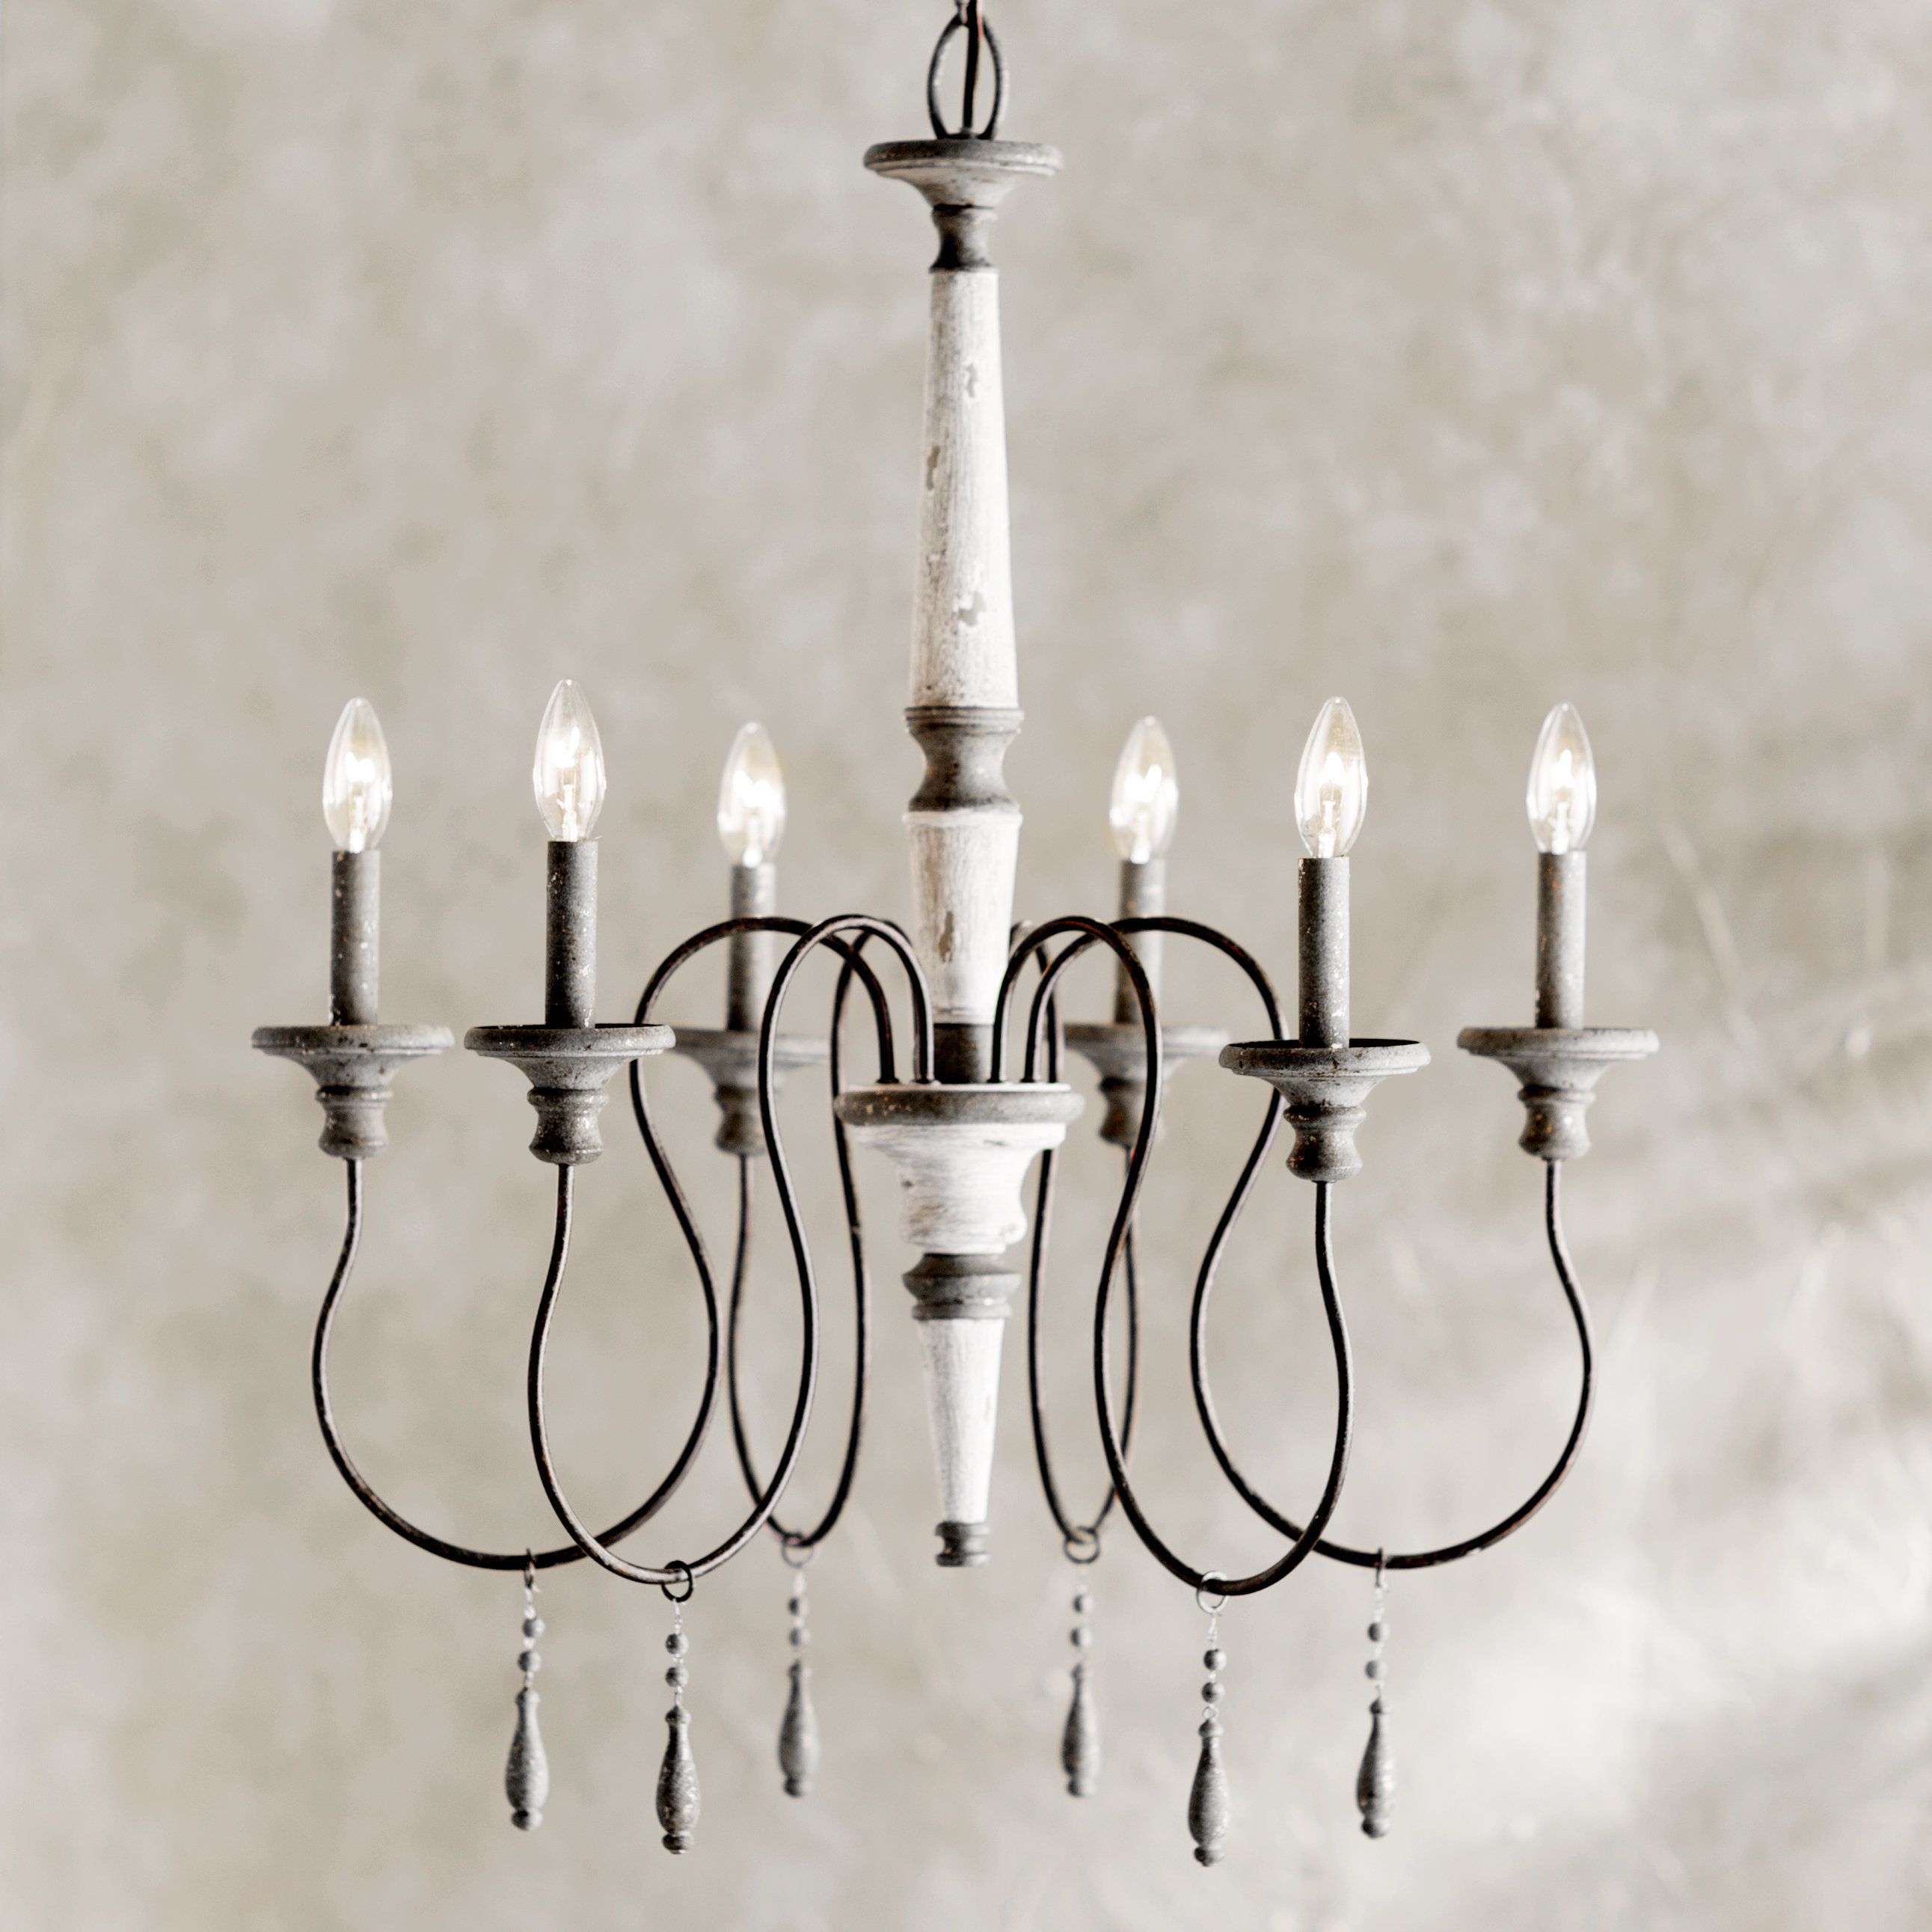 Farmhouse & Rustic Lark Manor Chandeliers | Birch Lane with regard to Corneau 5-Light Chandeliers (Image 17 of 30)